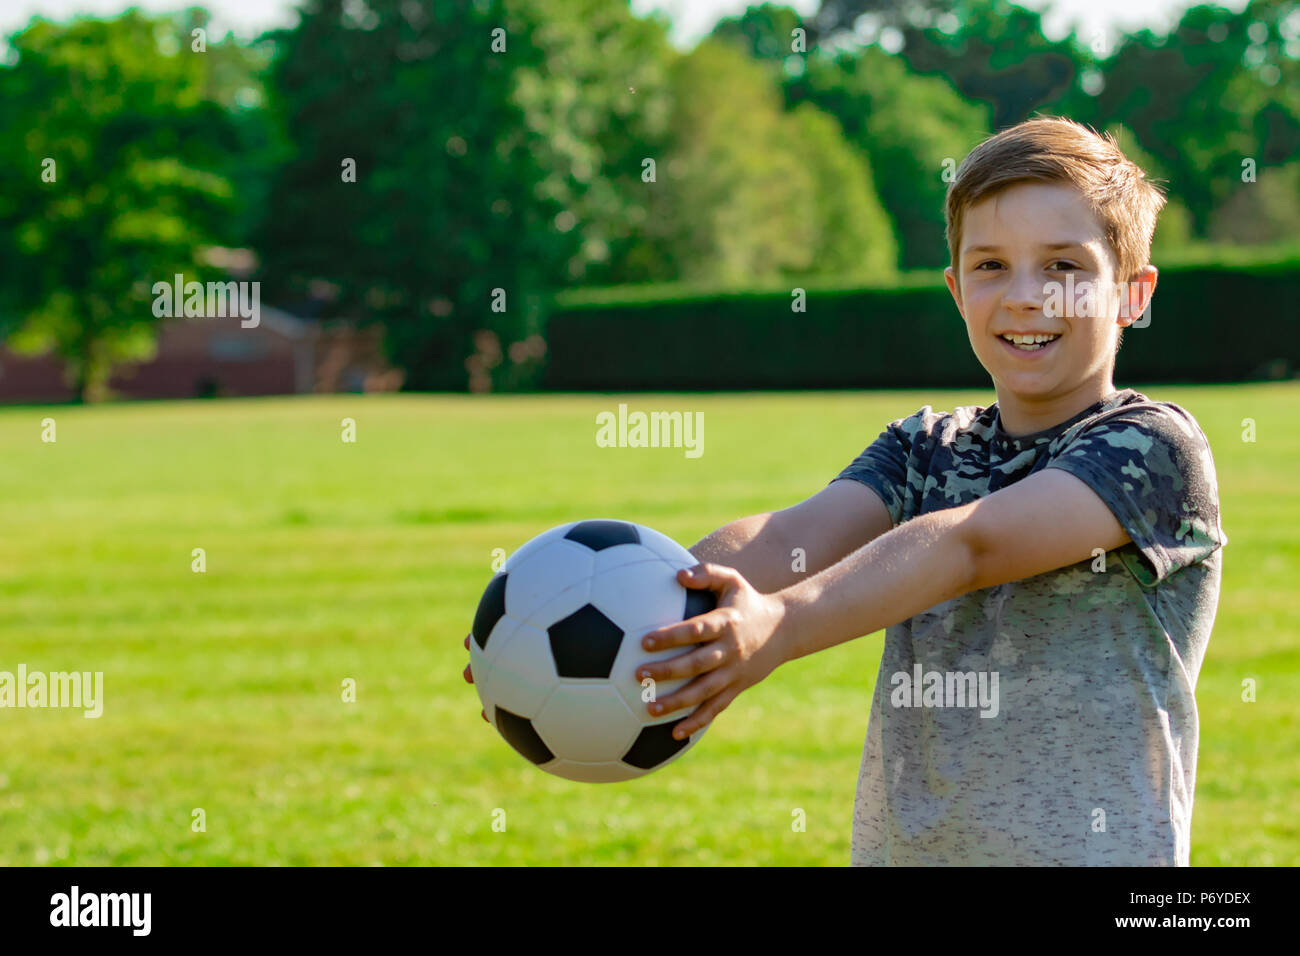 Pre-teen boy holding a football in a park - Stock Image